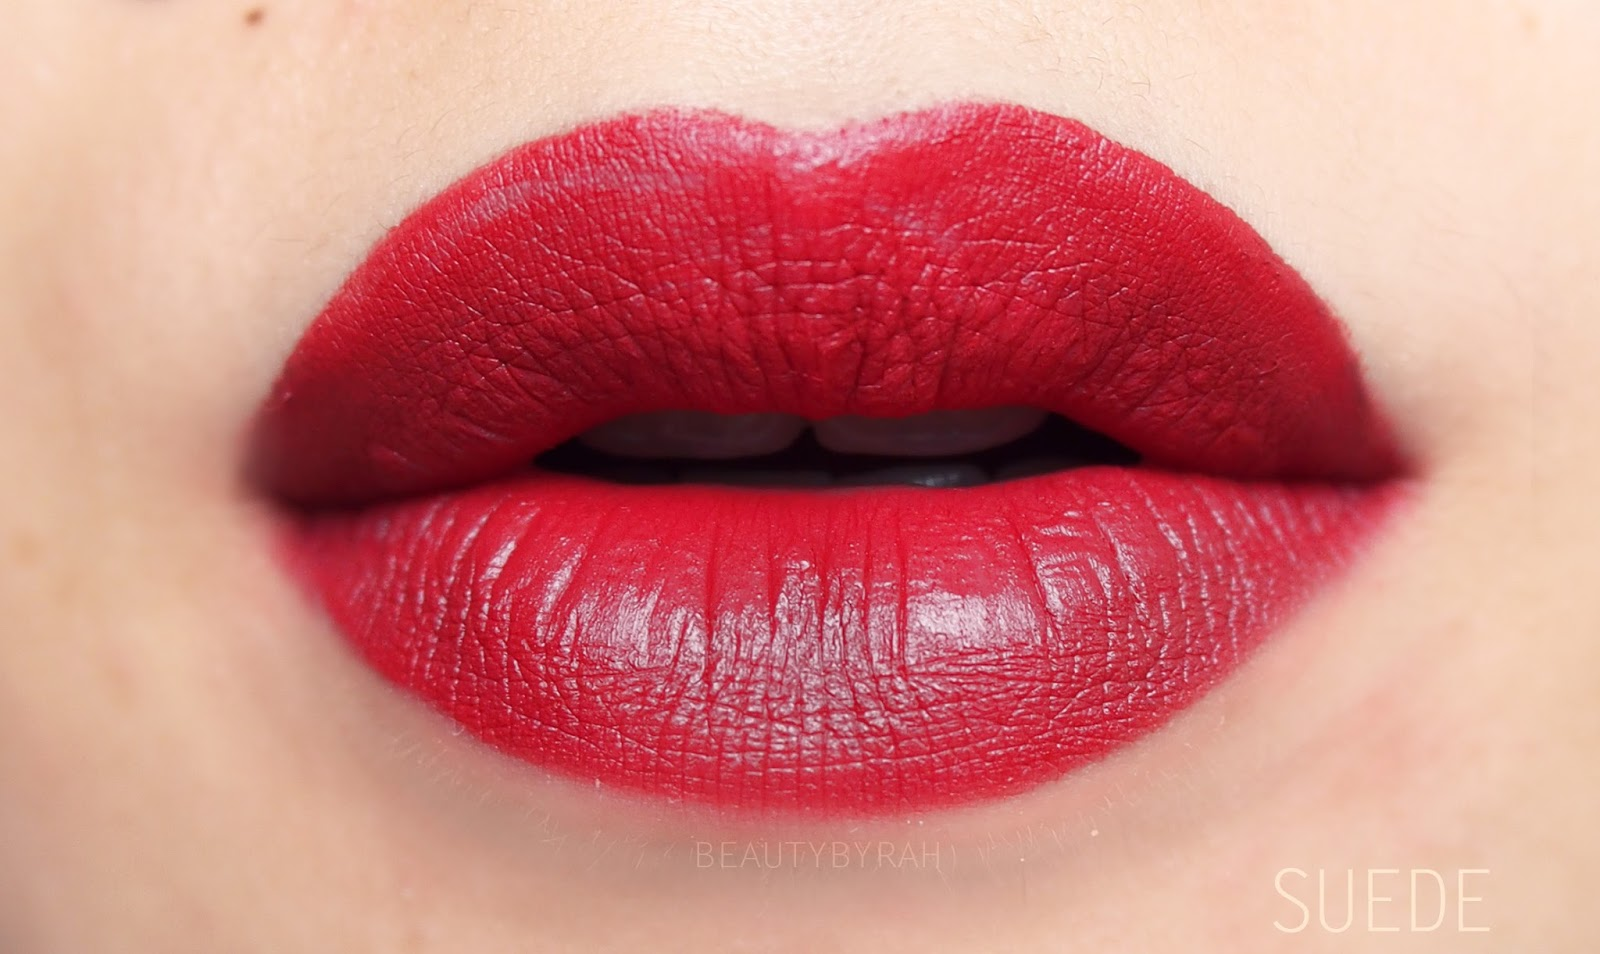 Palladio beauty Velvet Matte Cream Lip Colour review and swatches